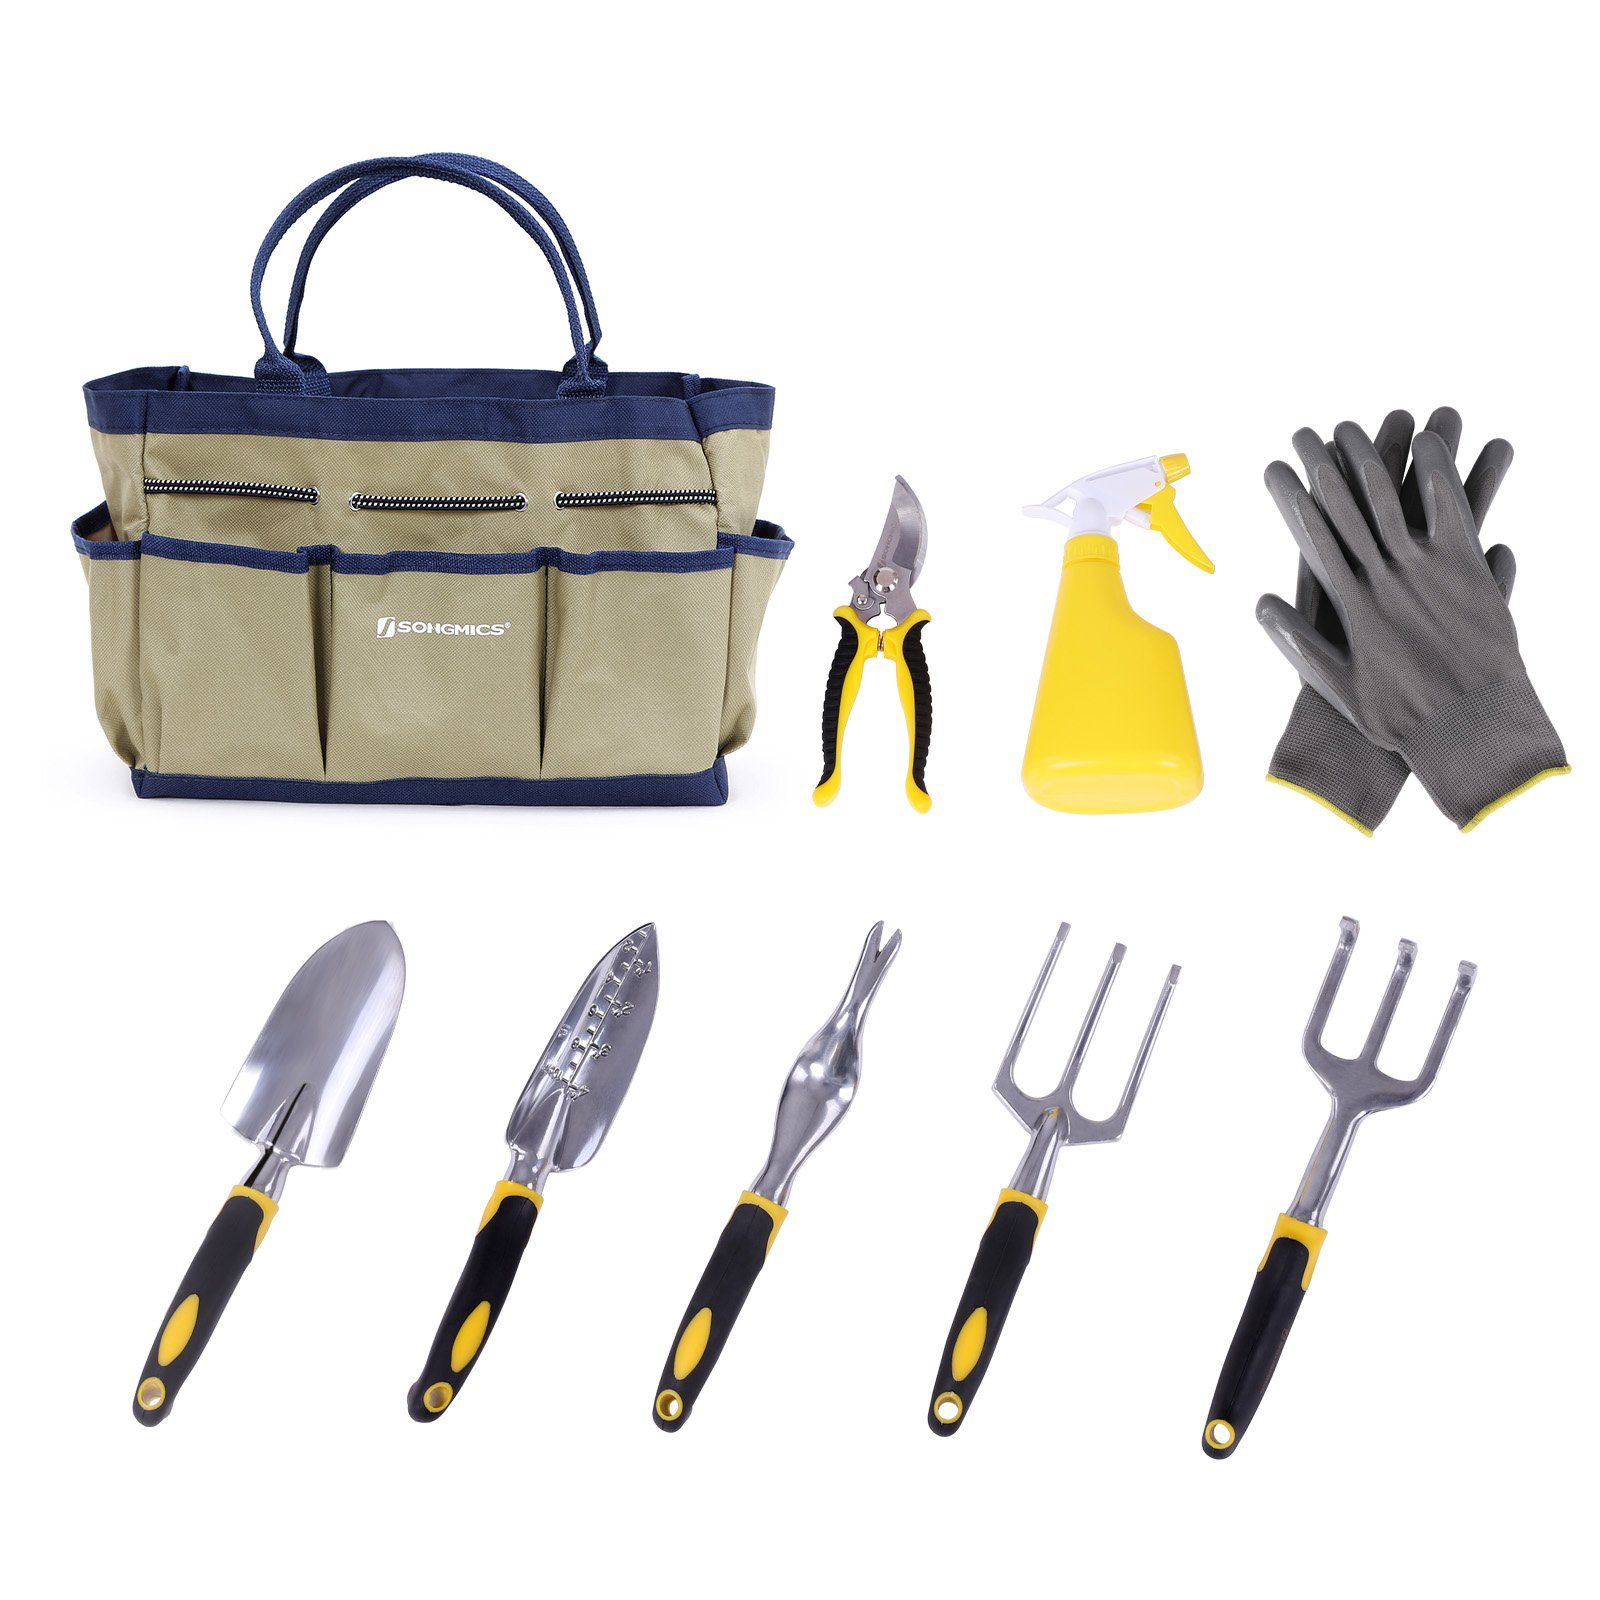 SONGMICS 9 Piece Garden Tool Set Includes Garden Tote and 6 Hand Tools Heavy Duty Cast-aluminum Heads Ergonomic Handles UGGB31L by SONGMICS